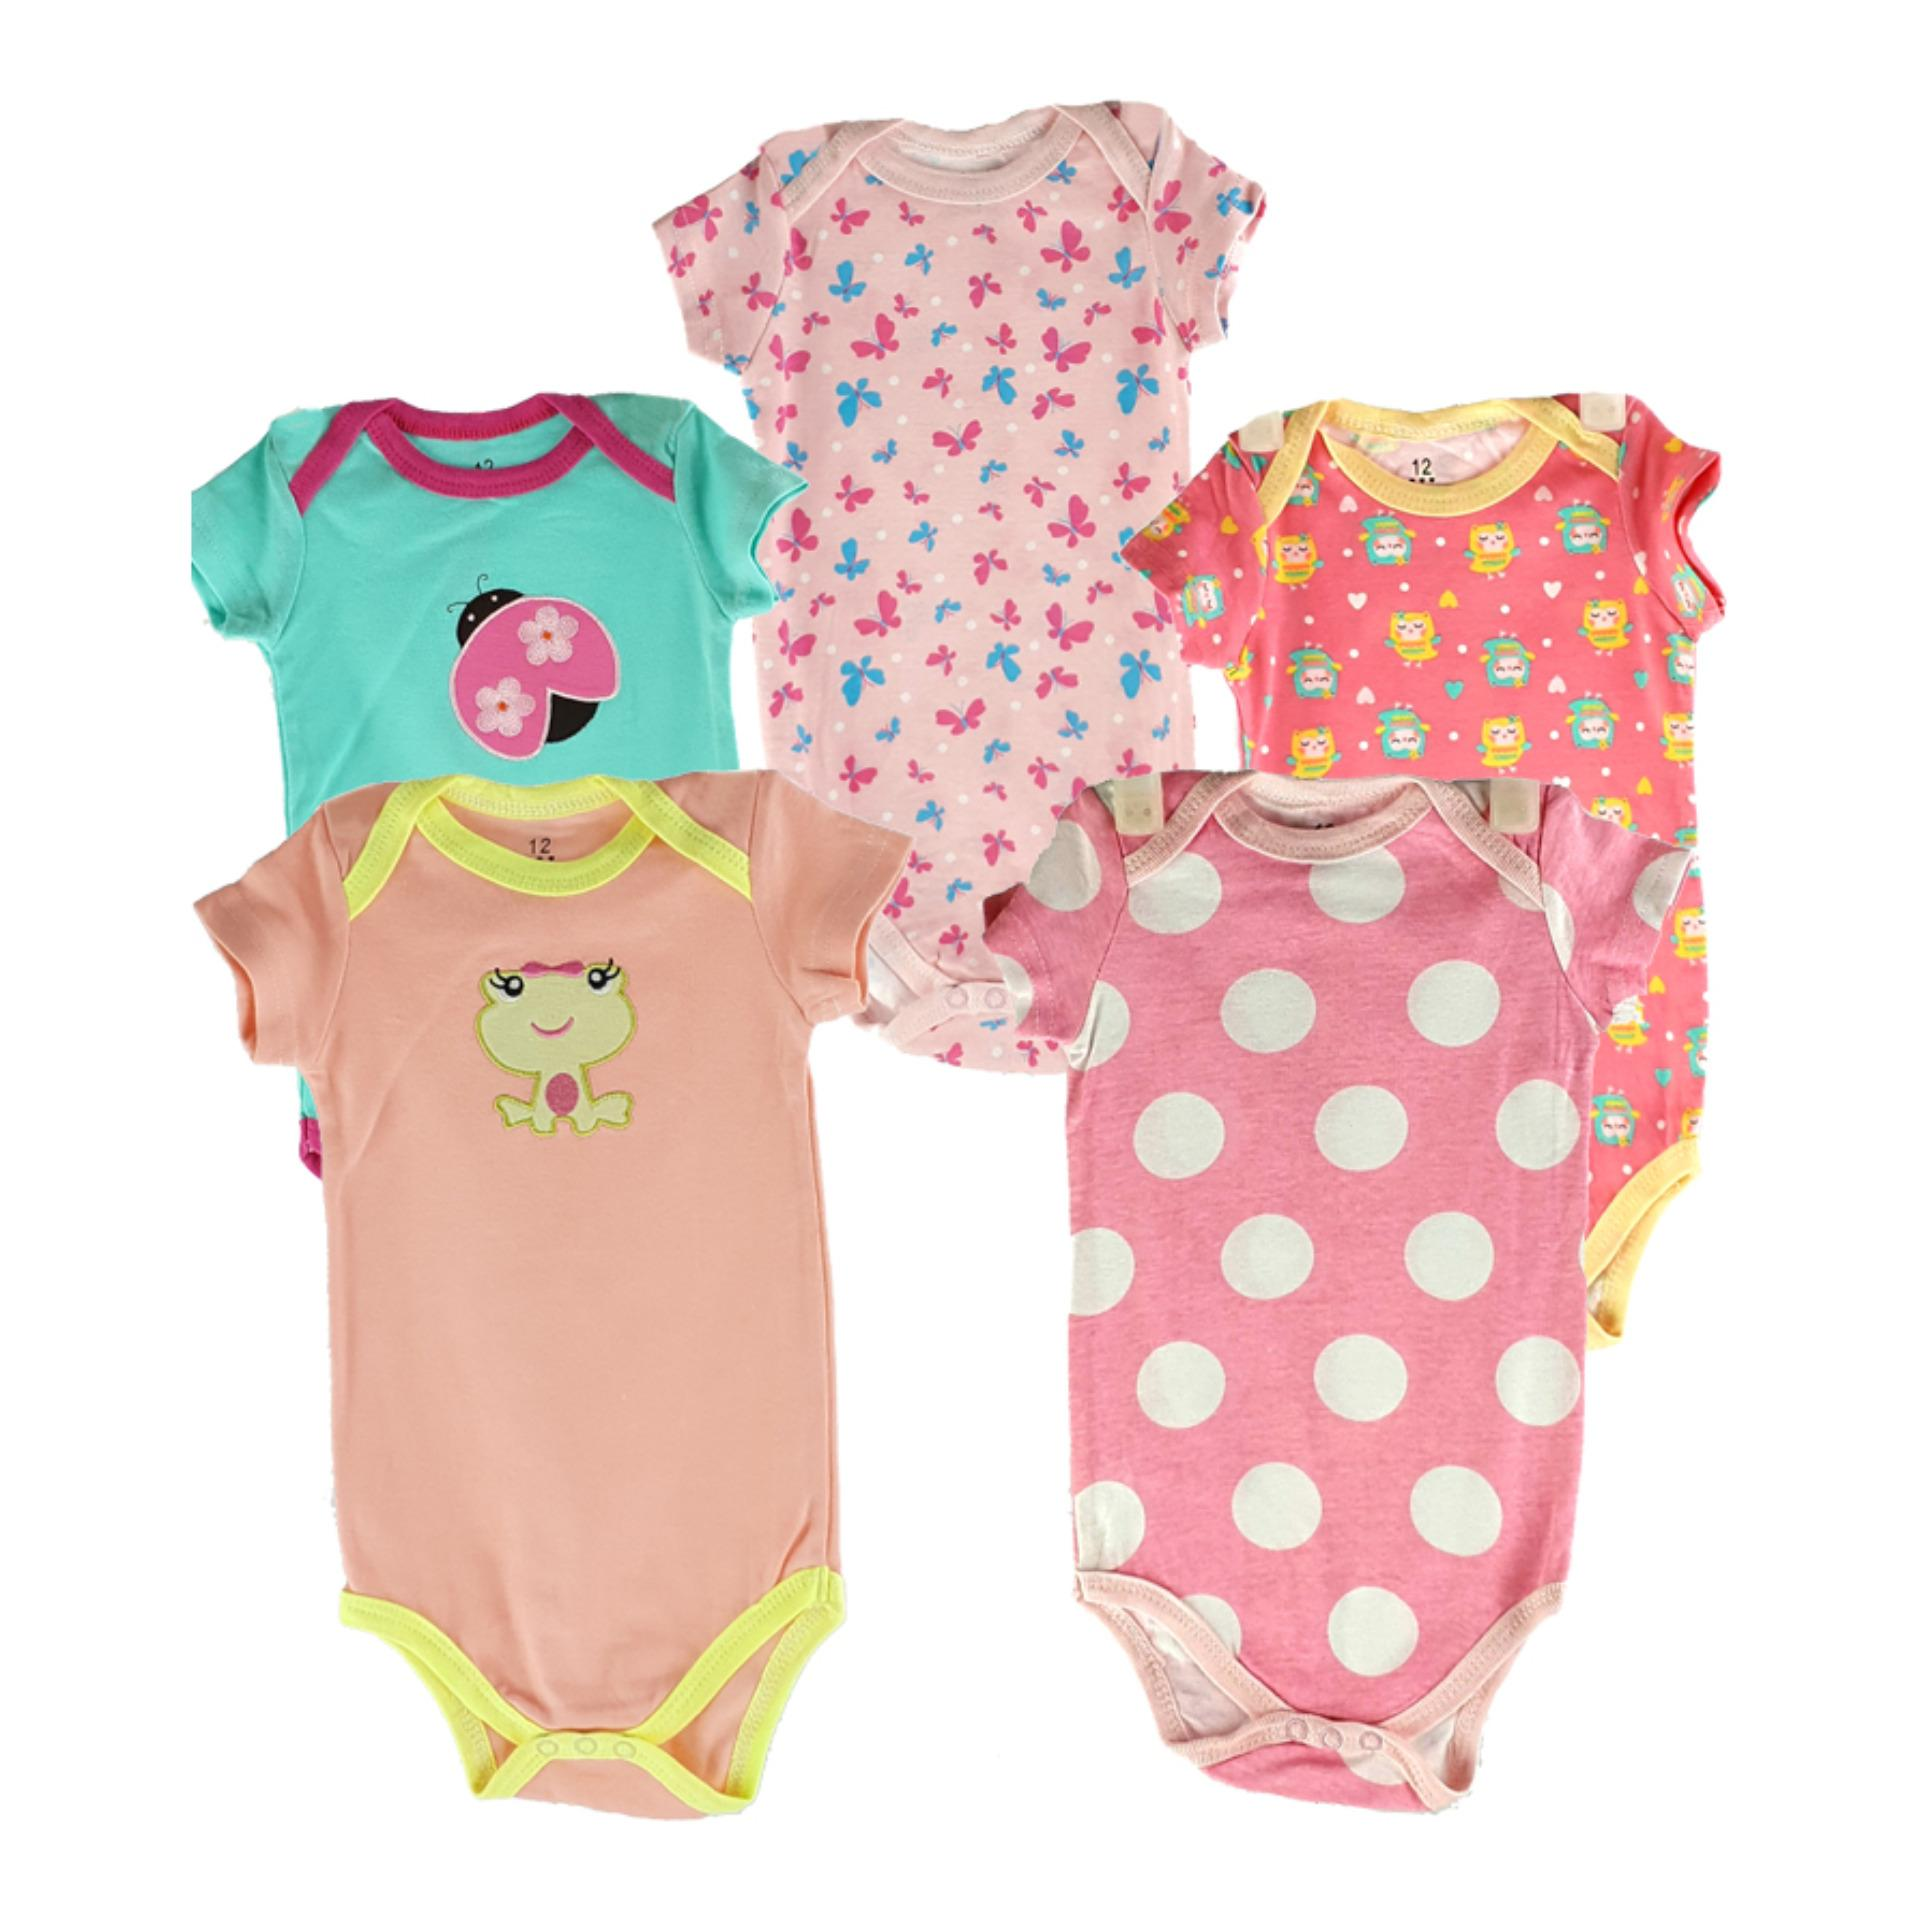 8a2caf76c Girls Clothing - Buy Girls Clothing at Best Price in Pakistan